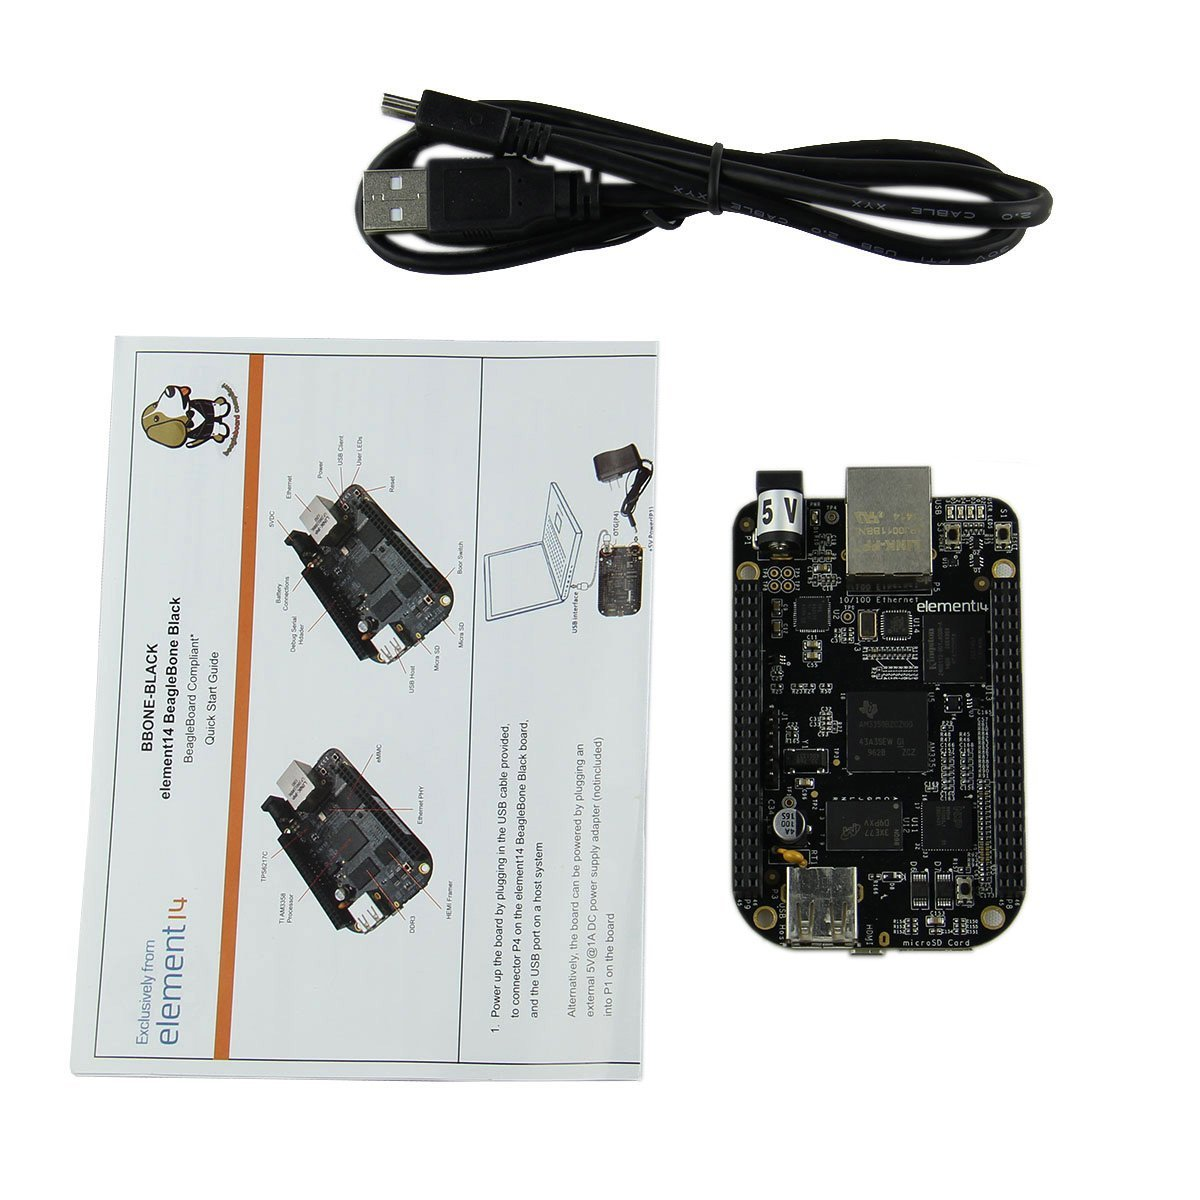 Embest BeagleBone BB Black 1GHz TI AM3358x Cortex A8 Development Board REV C Version